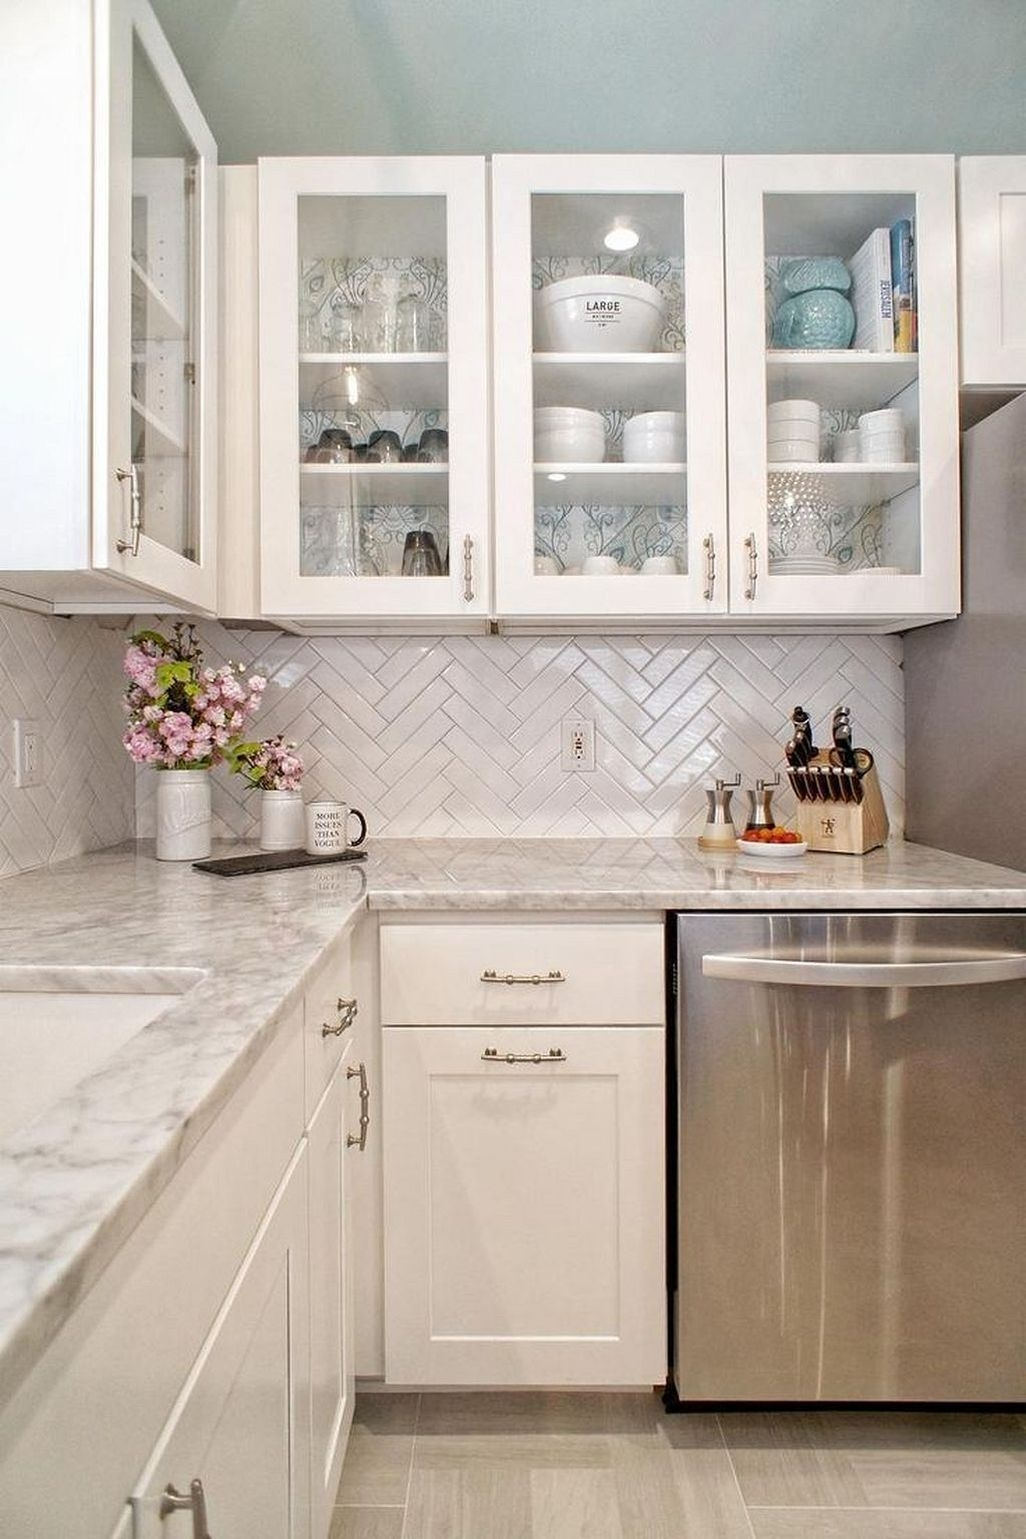 50 Images Of Awesome White Kitchen Design Ideas Hausratversicherungkosten